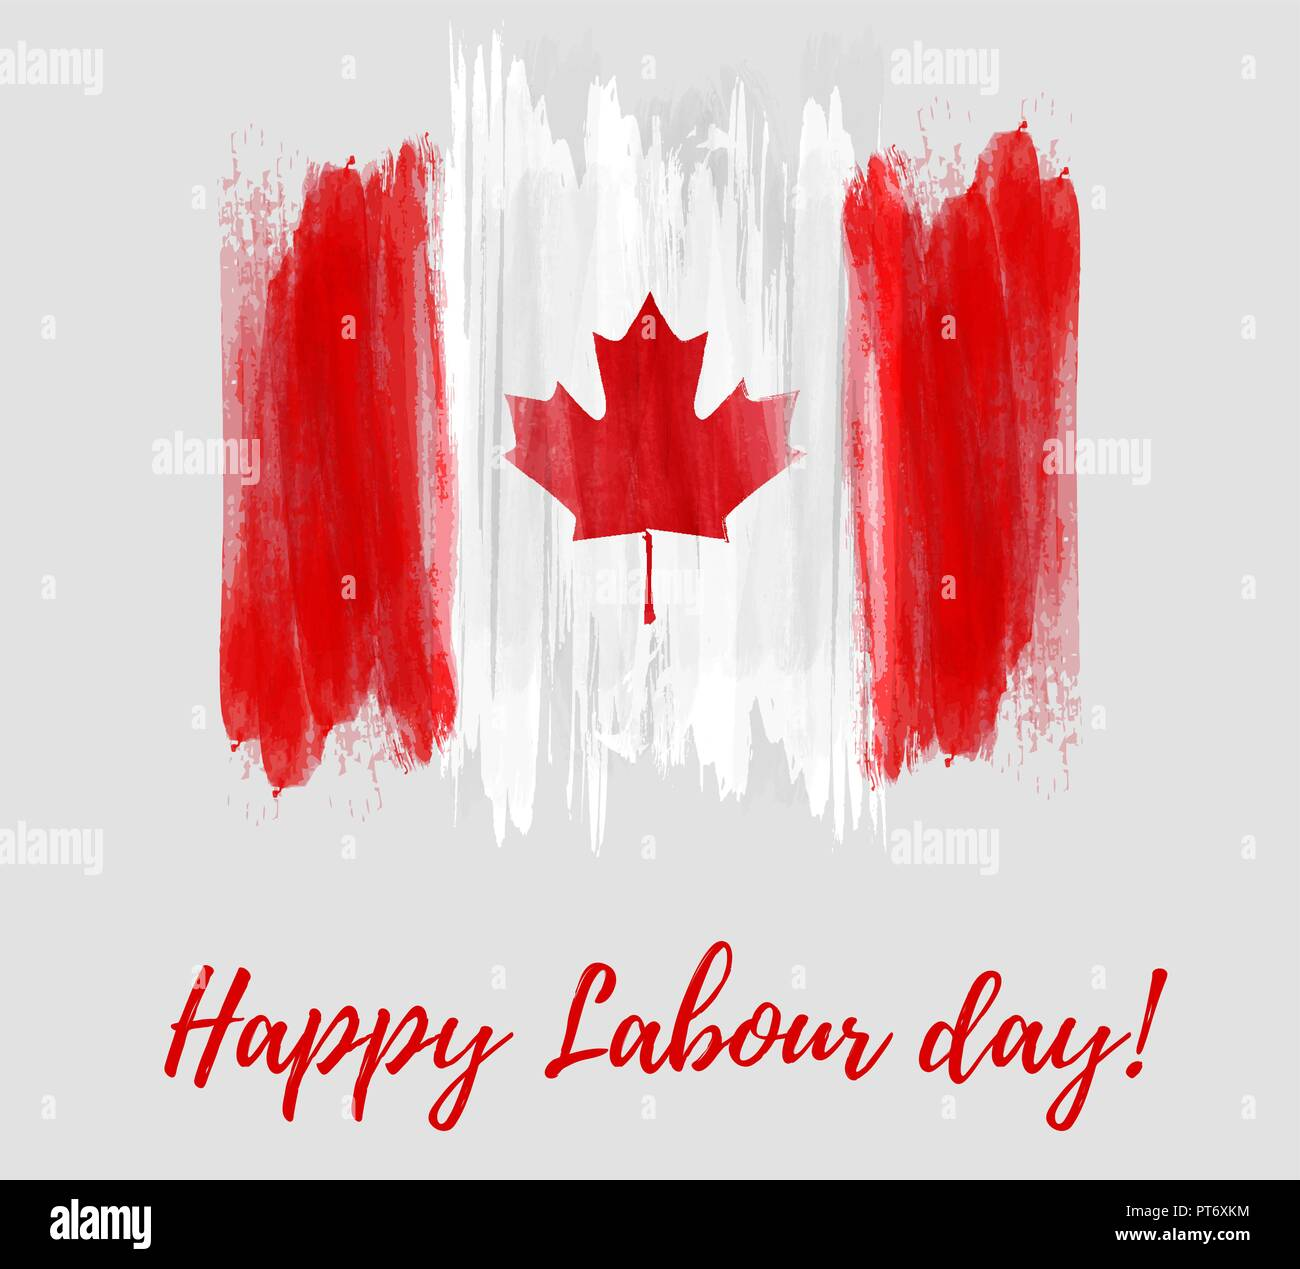 Canada Happy Labour Day Grunge Watercolor Canadian Flag Background